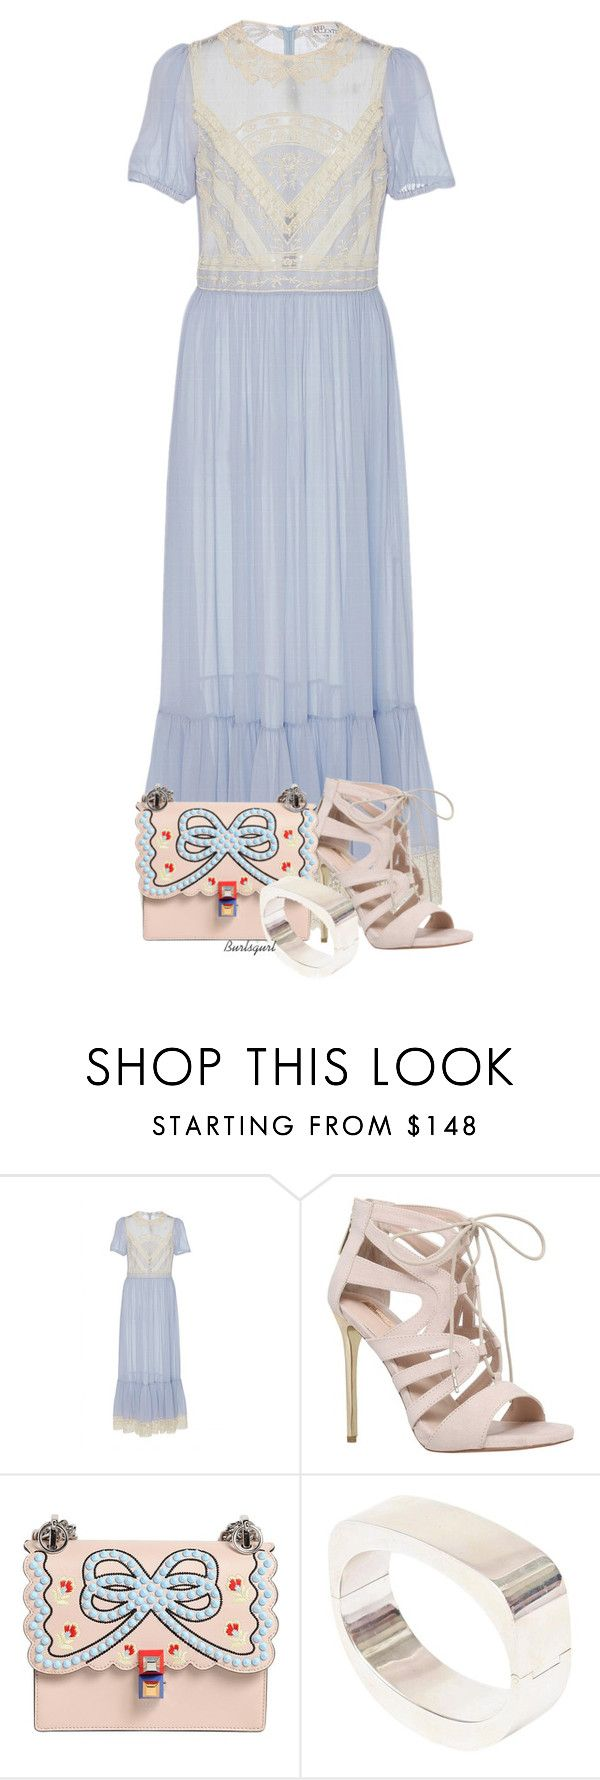 """Modestly Trending"" by burlsgurl ❤ liked on Polyvore featuring RED Valentino, Carvela and Fendi"